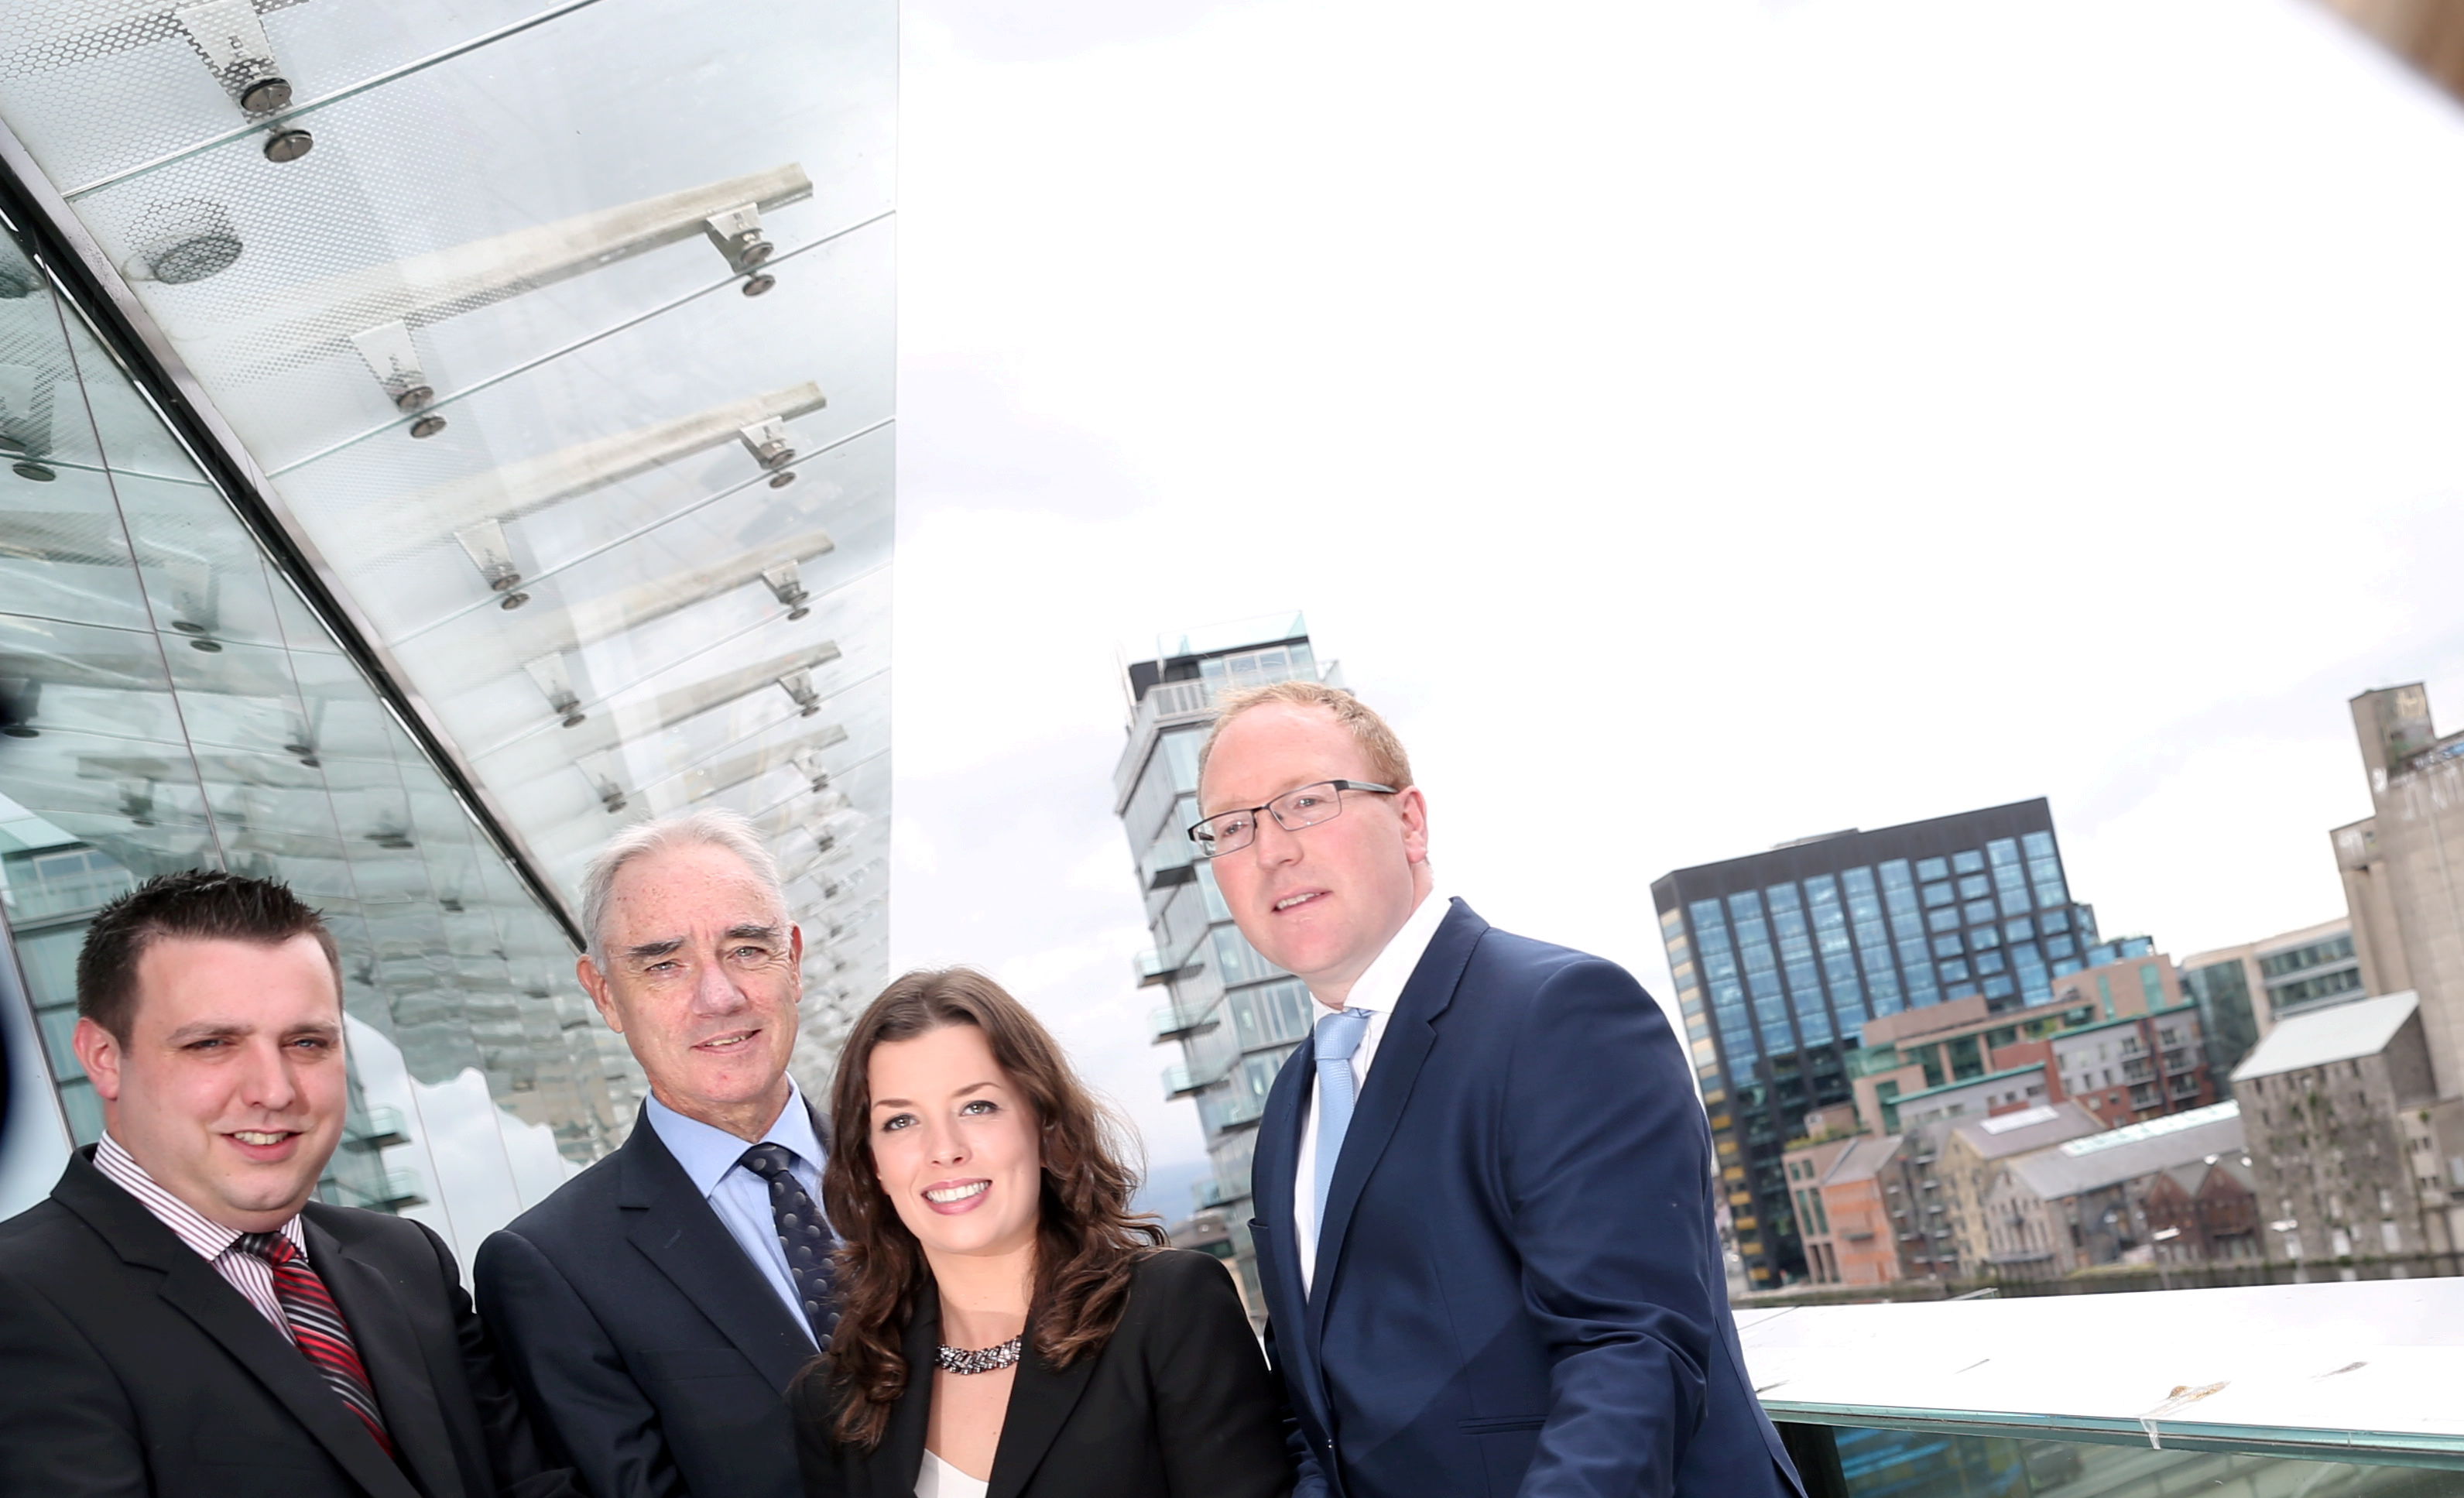 Repro Free: From Left: William McNamara, Business Advisor, Bank of Ireland Lexlip; Michael Moriarty, Manager of Financial & Enterprise Software High Potential Startups, Enterprise Ireland; Helen Norris, Kernel Capital & Brendan Casey, CEO, swiftQueue. Picture Jason Clarke.